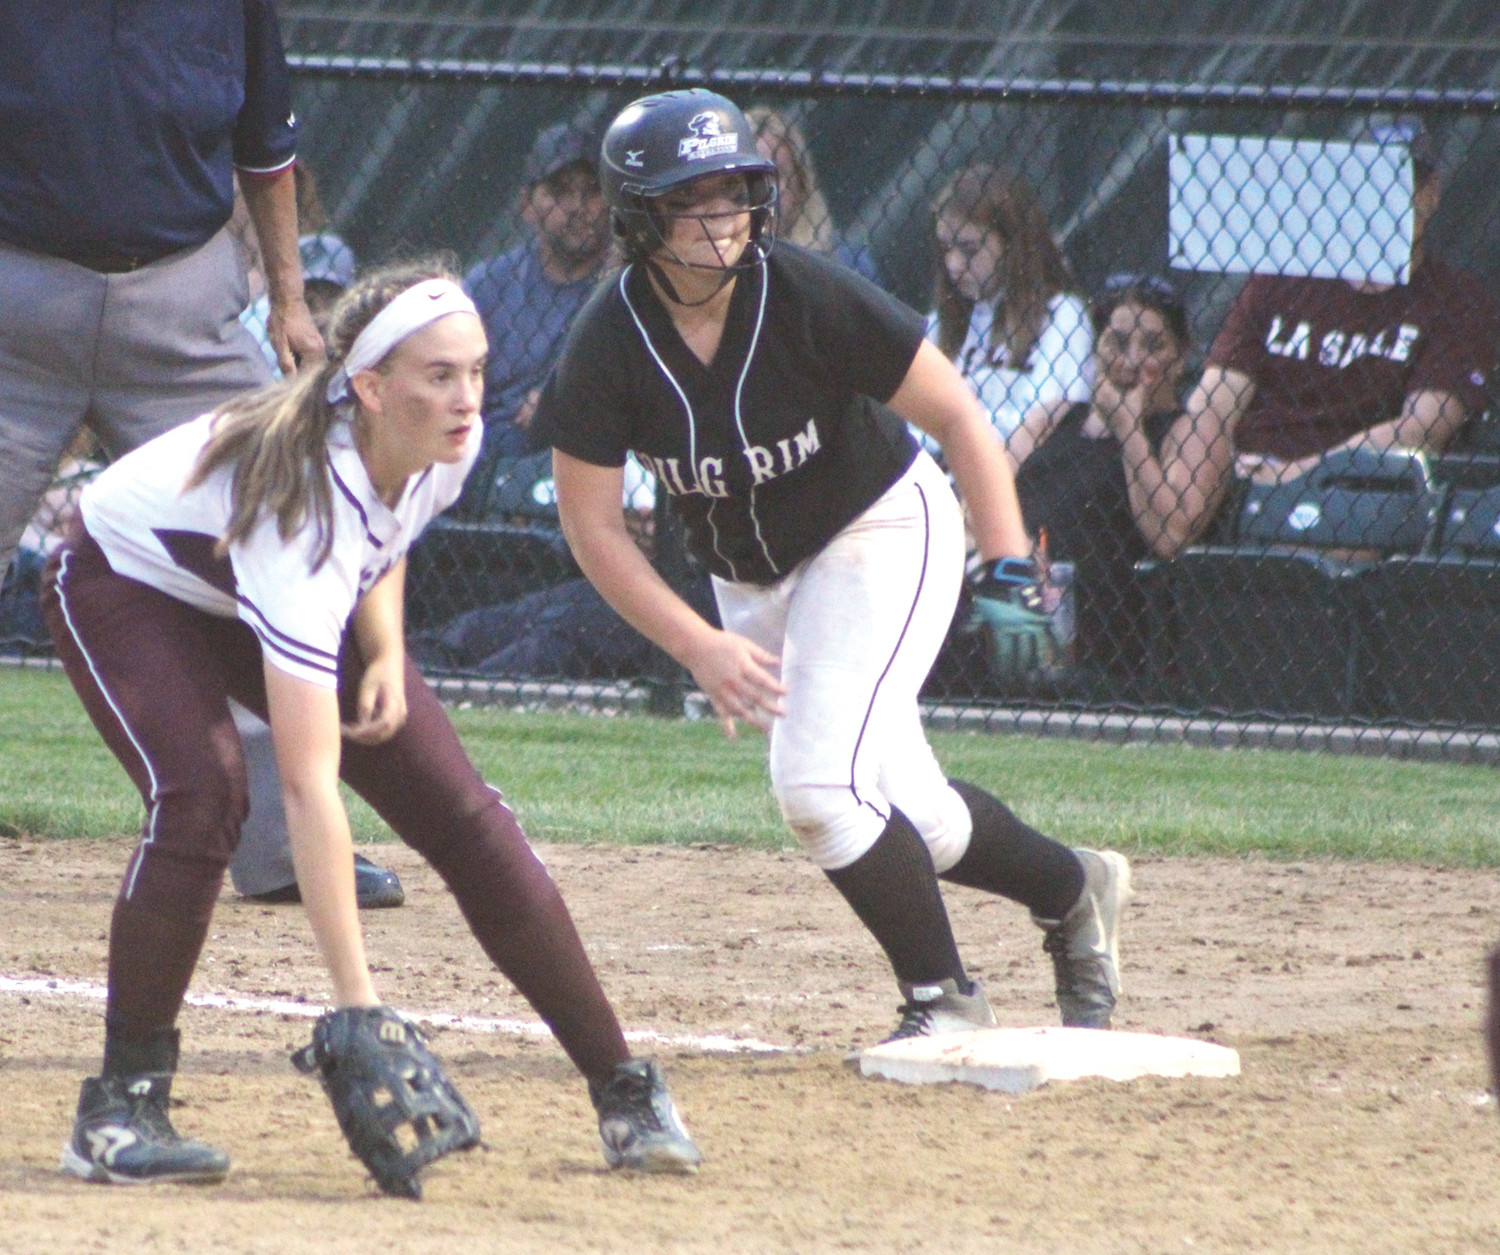 ON YOUR MARK: Pilgrim's Karly Evans (right) gets ready for the hit and run against La Salle in the D1 playoffs.